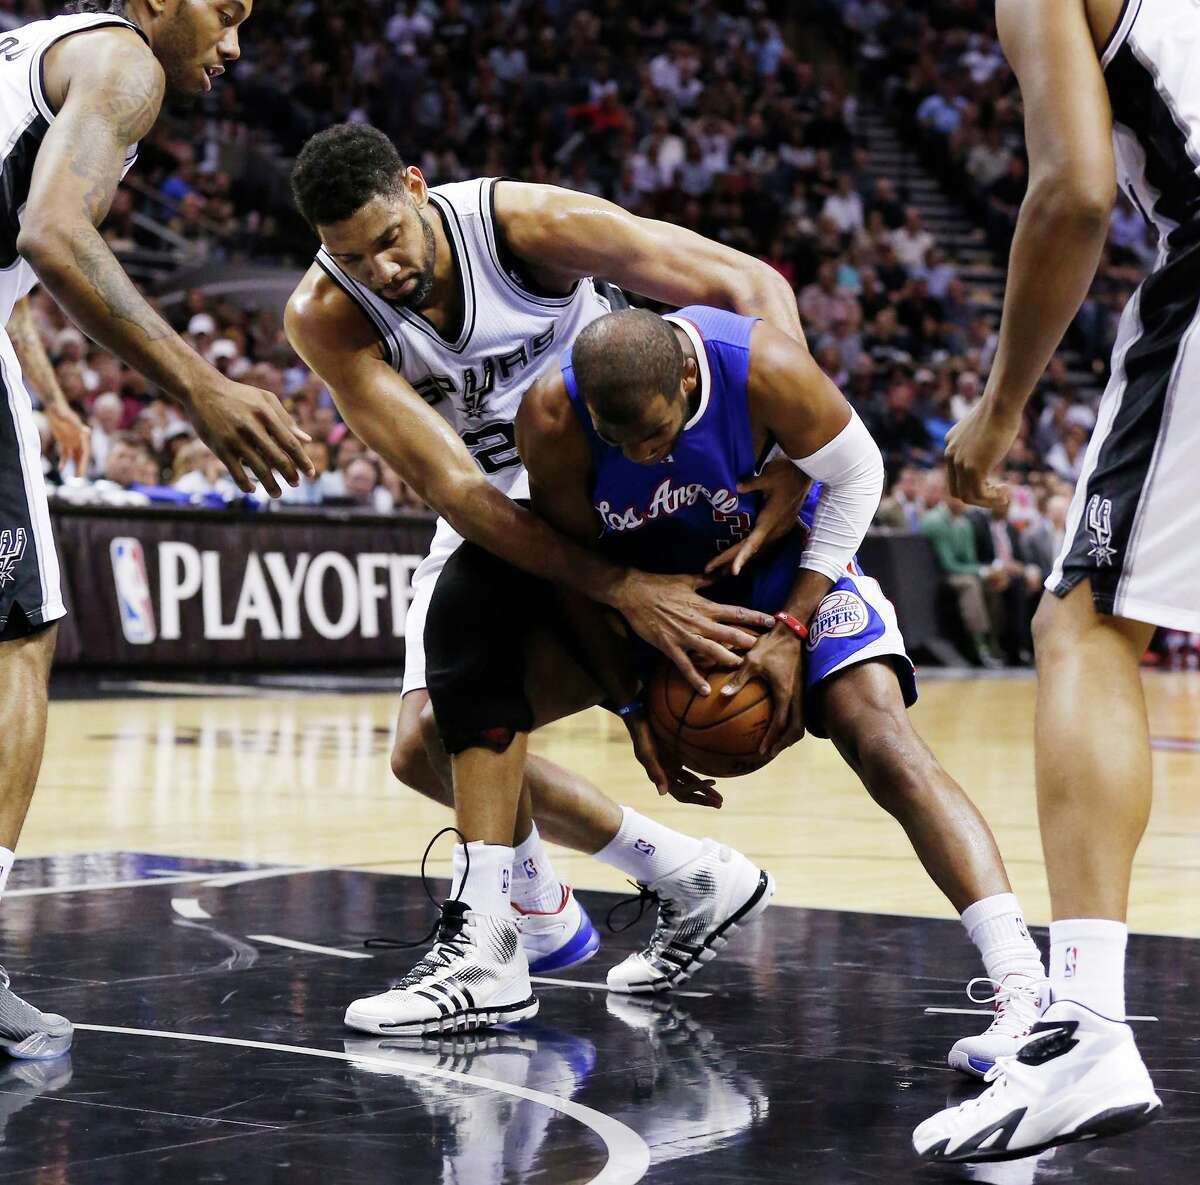 Spurs' Tim Duncan (21) ties up Los Angeles Clippers' Chris Paul (03) for a loose ball during Game 6 of the first round of the Western Conference playoffs at the AT&T Center on Thursday, Apr. 30, 2015.